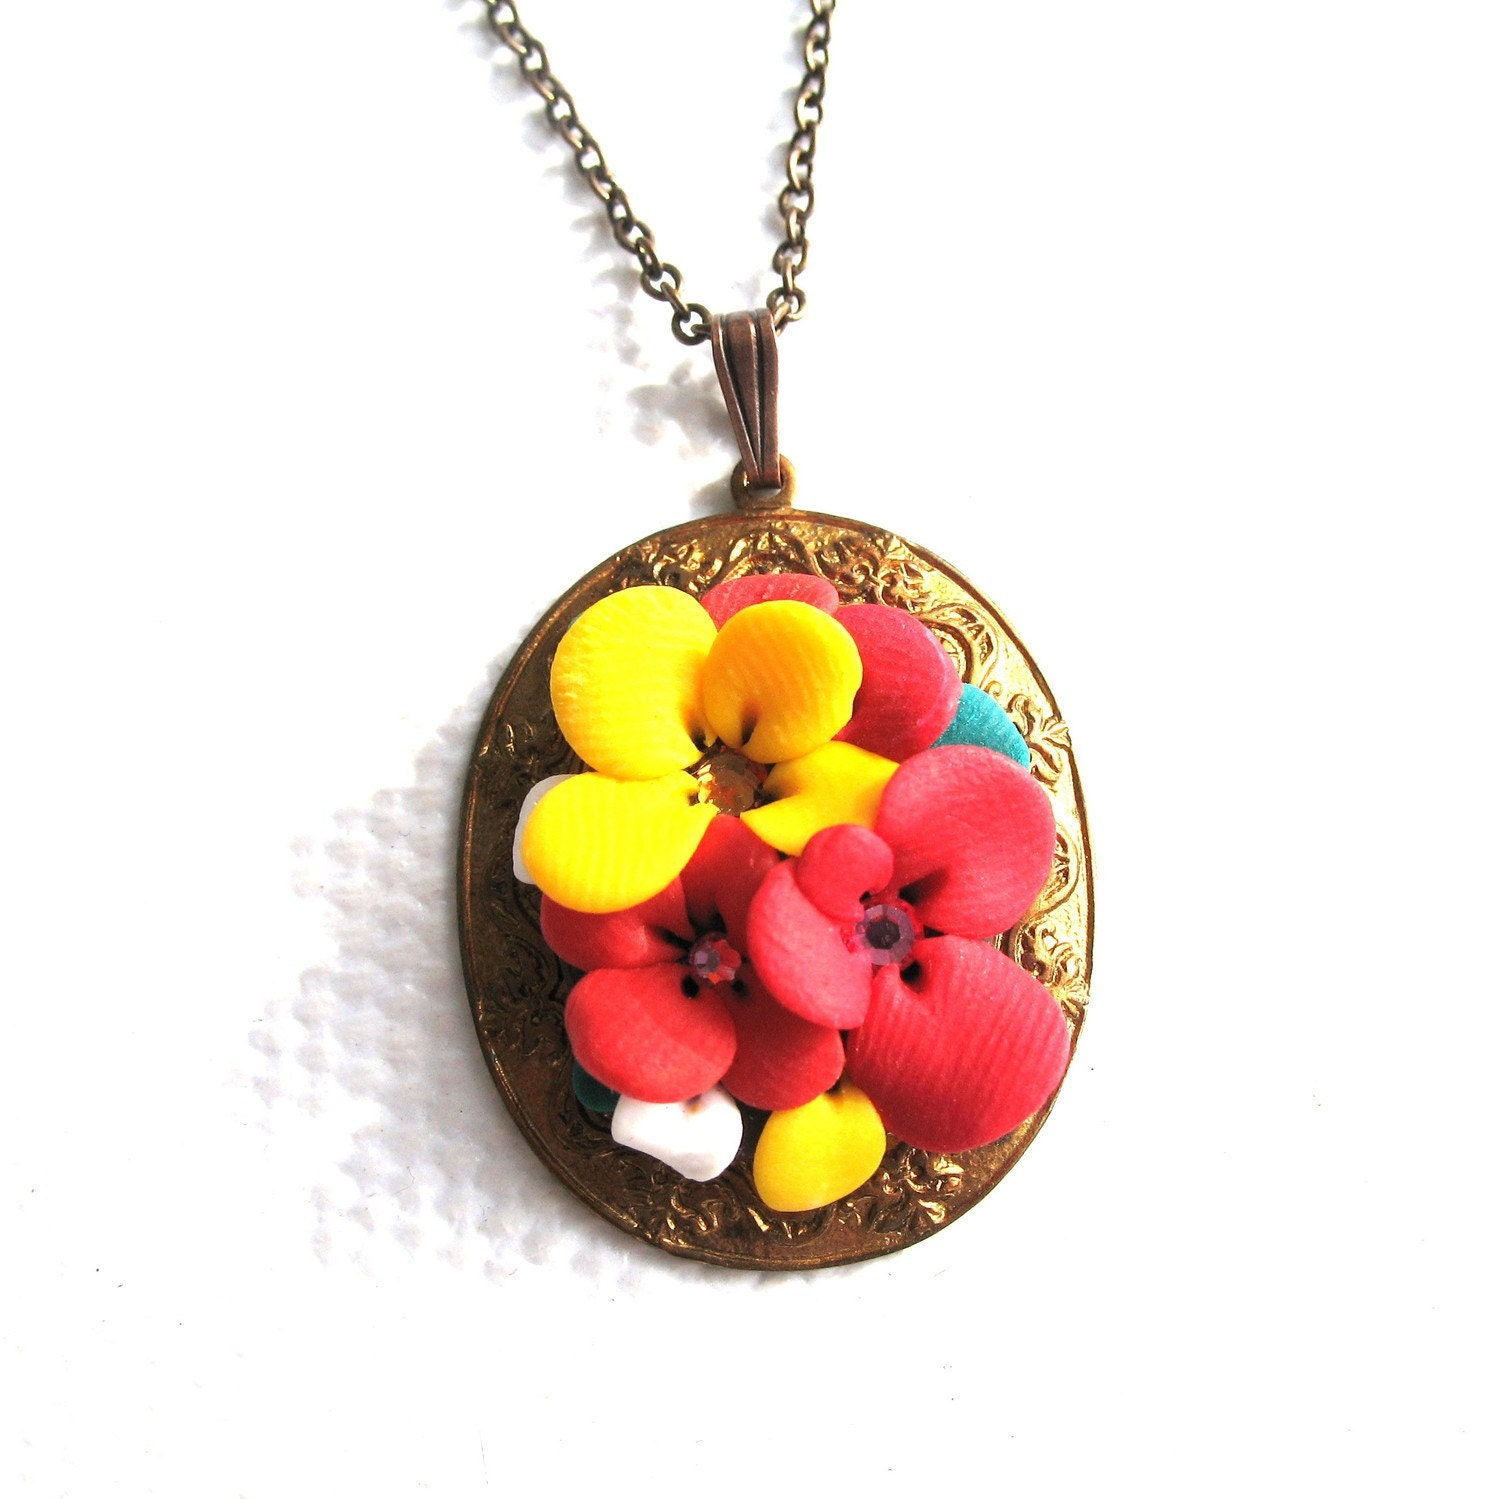 Emma - Victorian frame pendant with clay flower detail, 22mm x 25mm